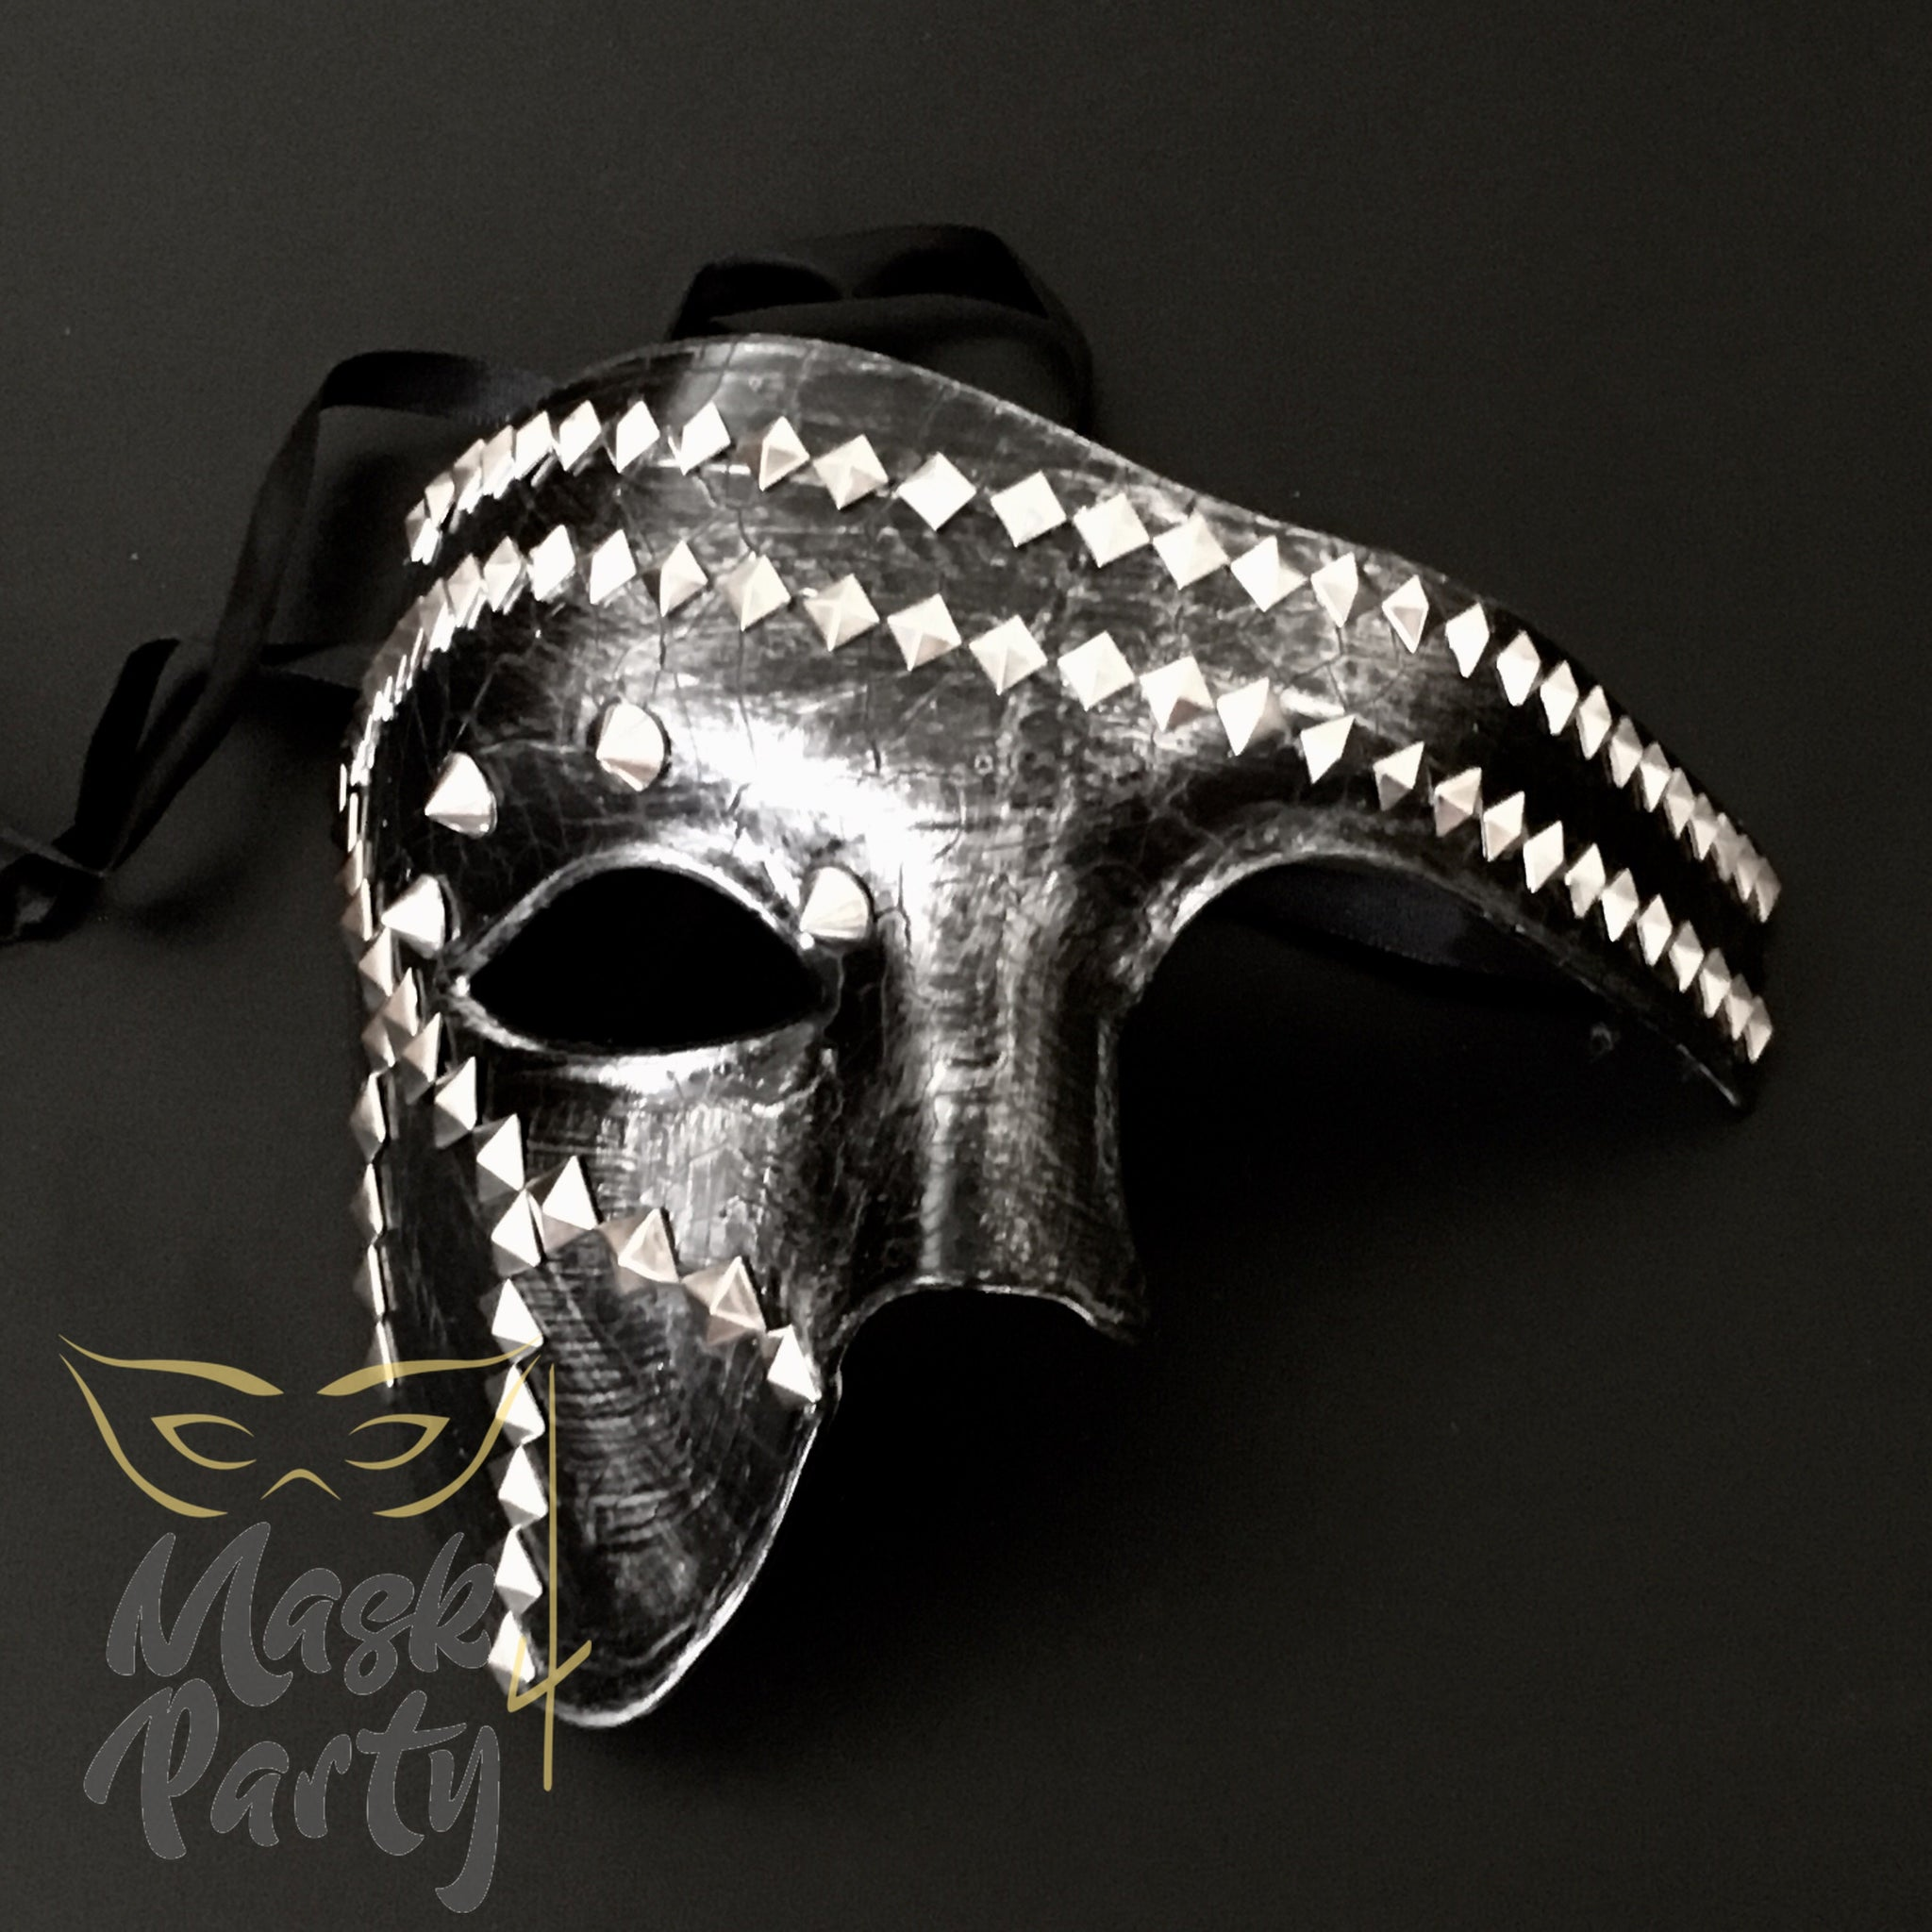 NEW - Steampunk Mask - Phantom Punk Pyramid Rivet - Black/Silver